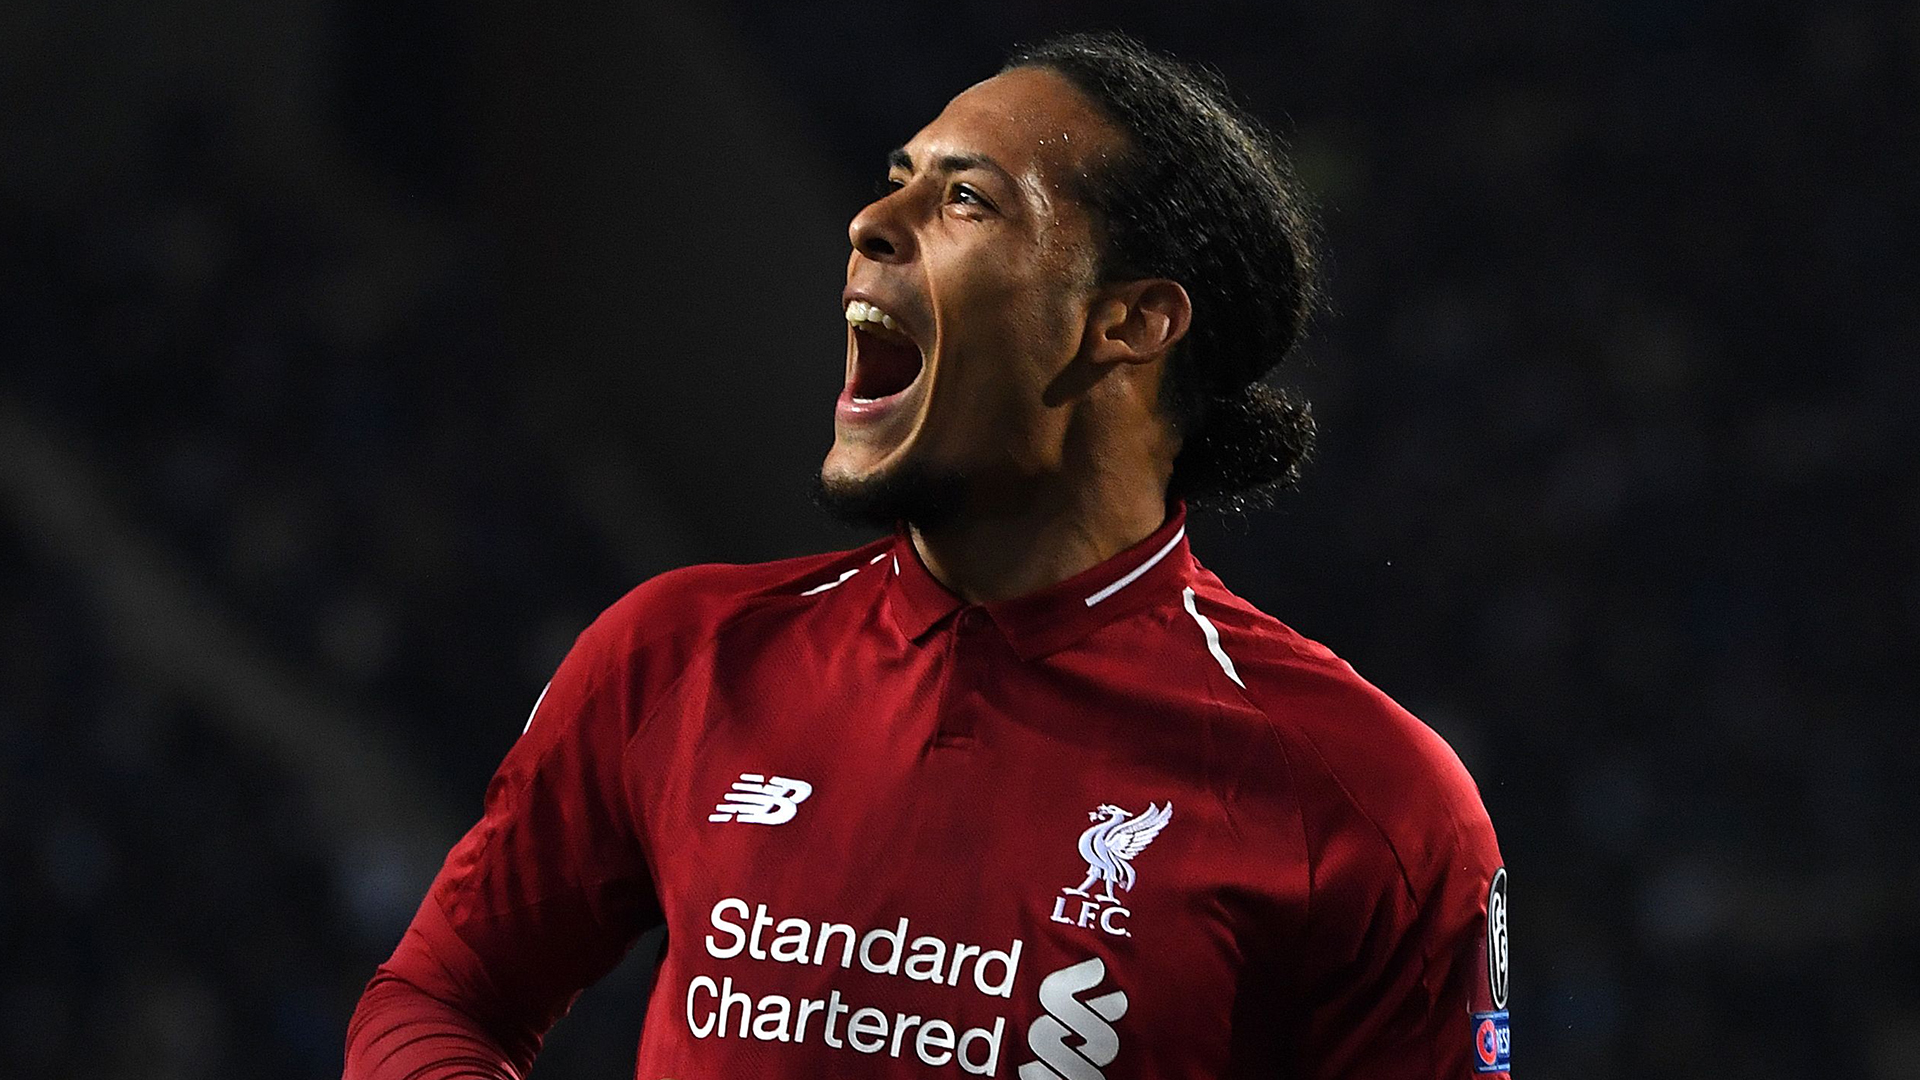 Liverpool's Dutch defender Virgil van Dijk celebrates after scoring his team's fourth goal during the UEFA Champions League quarter-final second leg football match between FC Porto and Liverpool at the Dragao Stadium in Porto on April 17, 2019. (Photo by Paul ELLIS / AFP)        (Photo credit should read PAUL ELLIS/AFP/Getty Images)